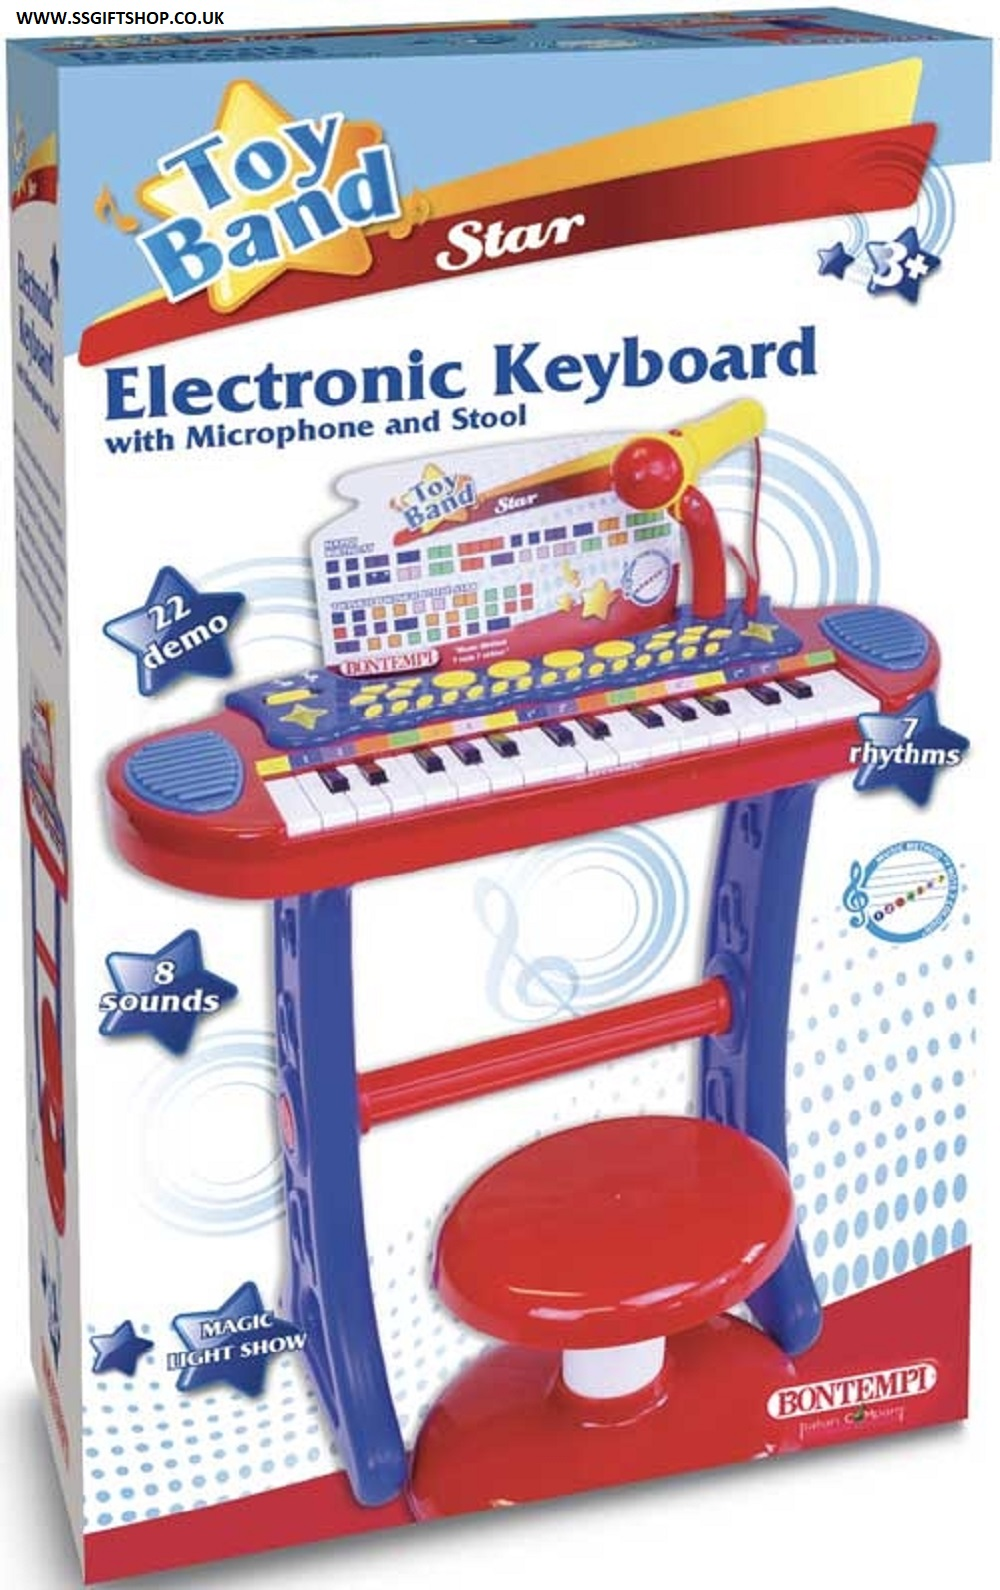 ELECTRONIC KEYBOARD WITH MICROPHONE AND STOOL.